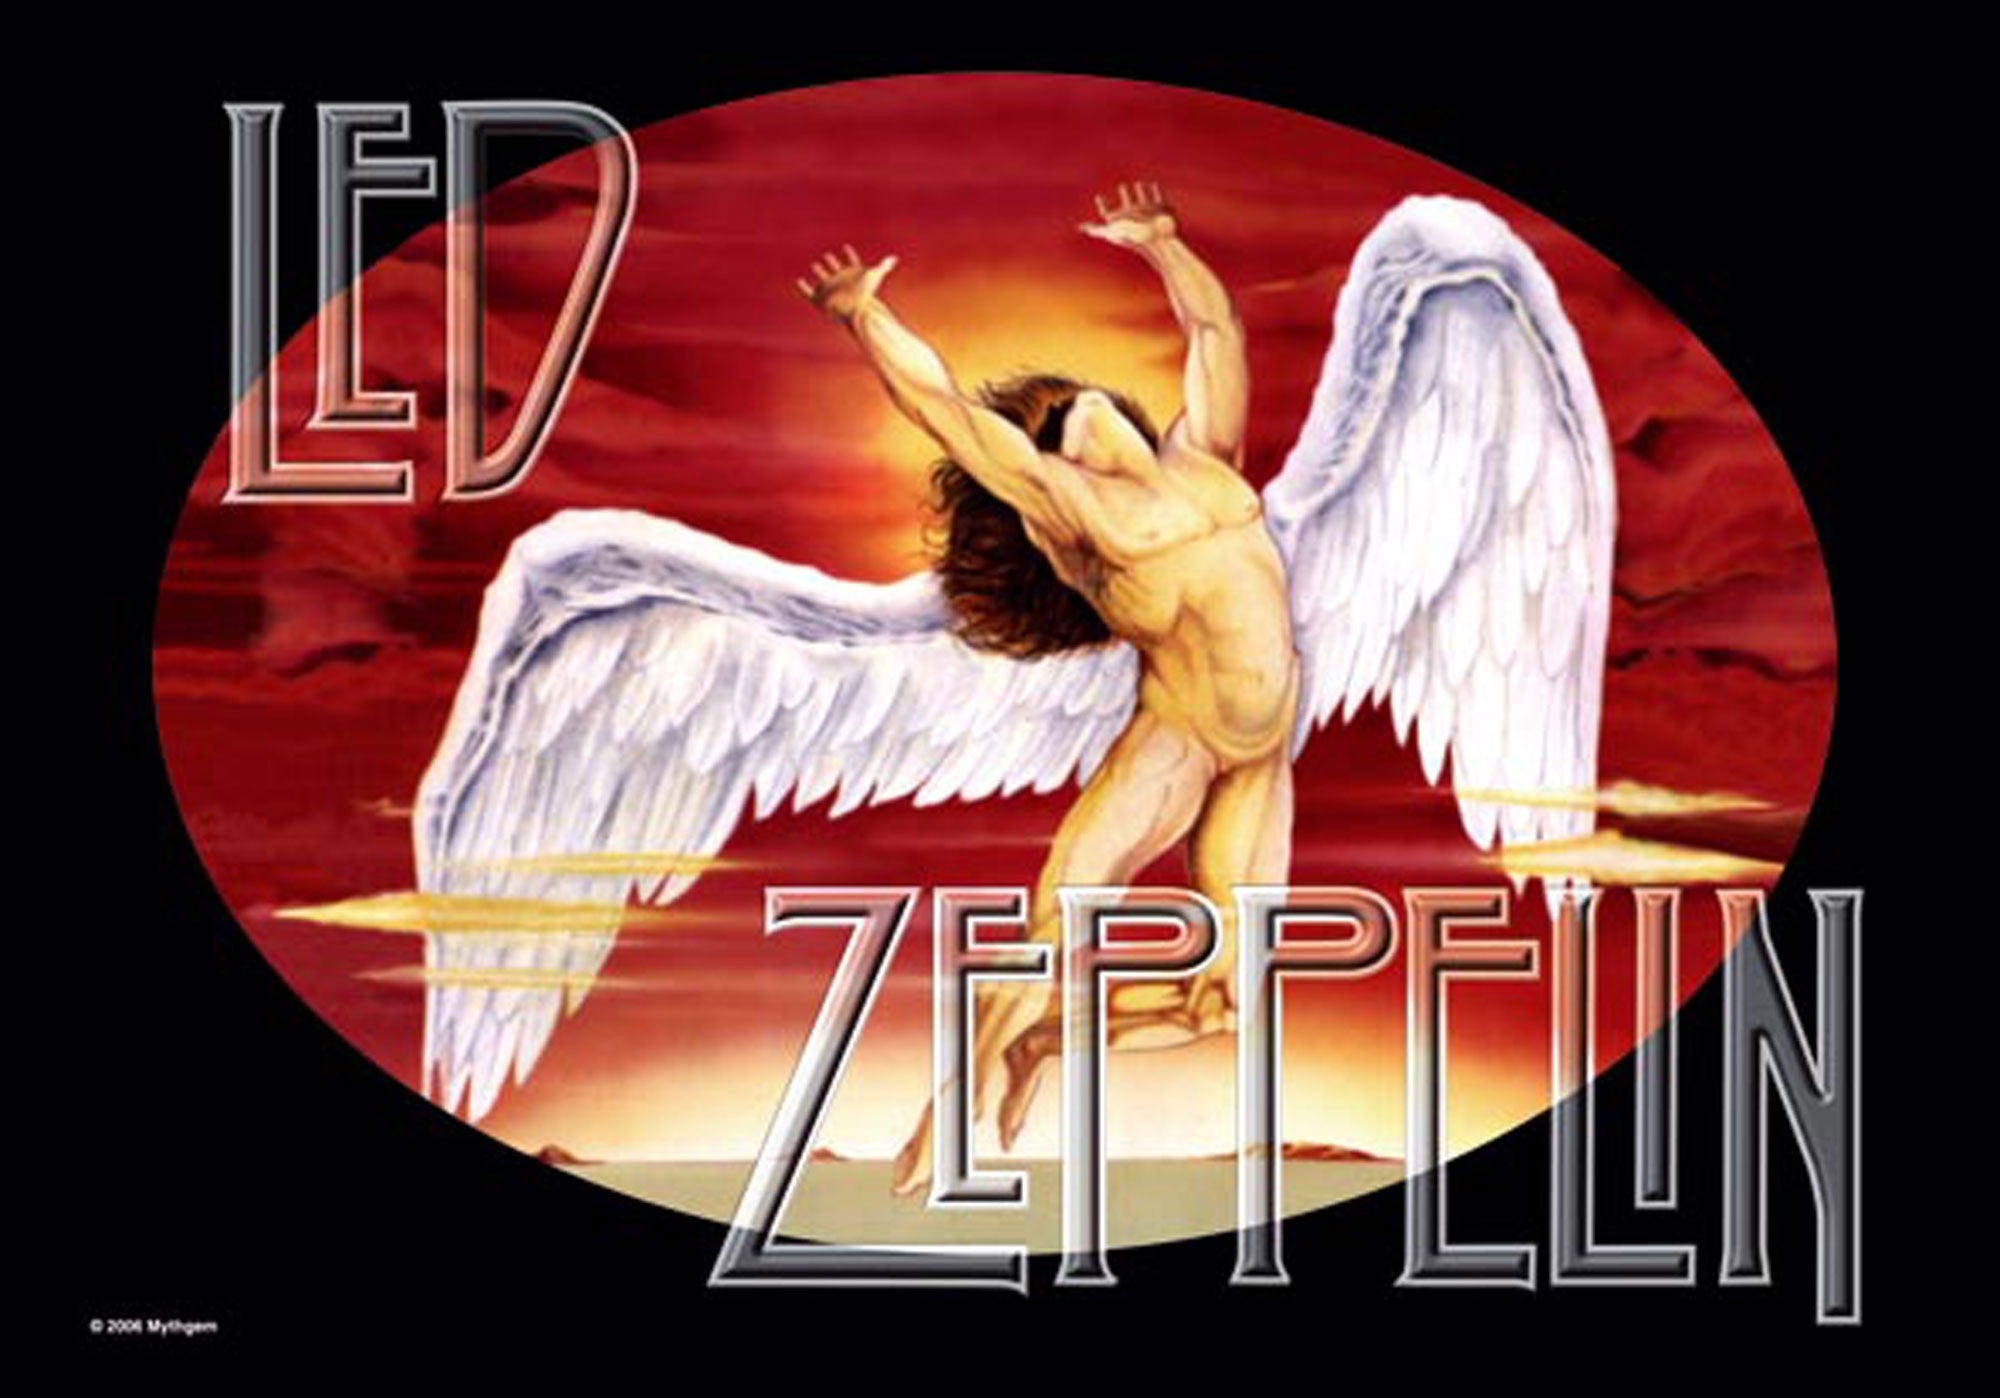 Led Zeppelin - Posterflagge - Icarus